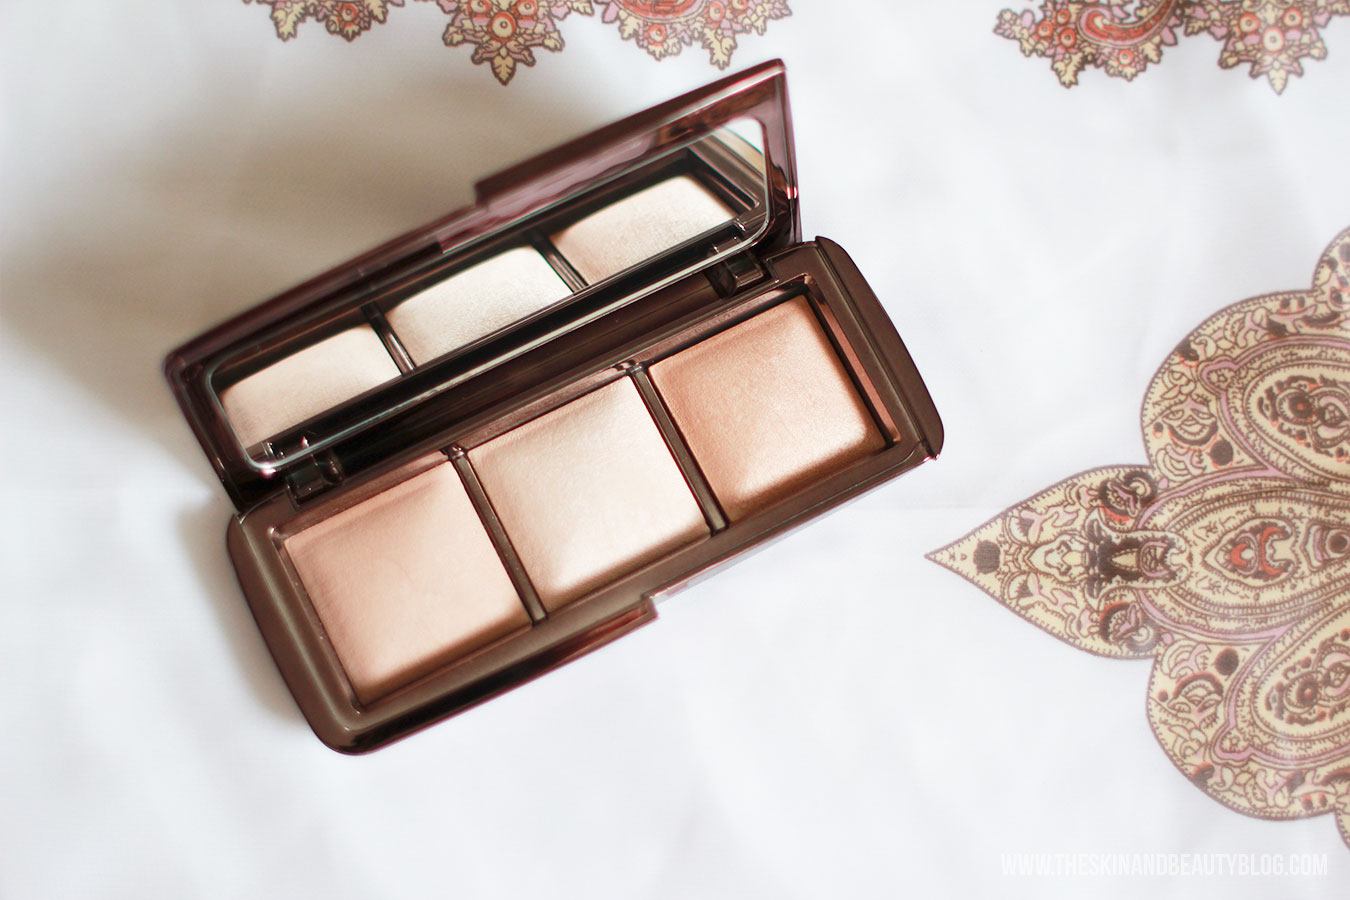 Hourglass Ambient Lighting Powder Palette Review, Swatches